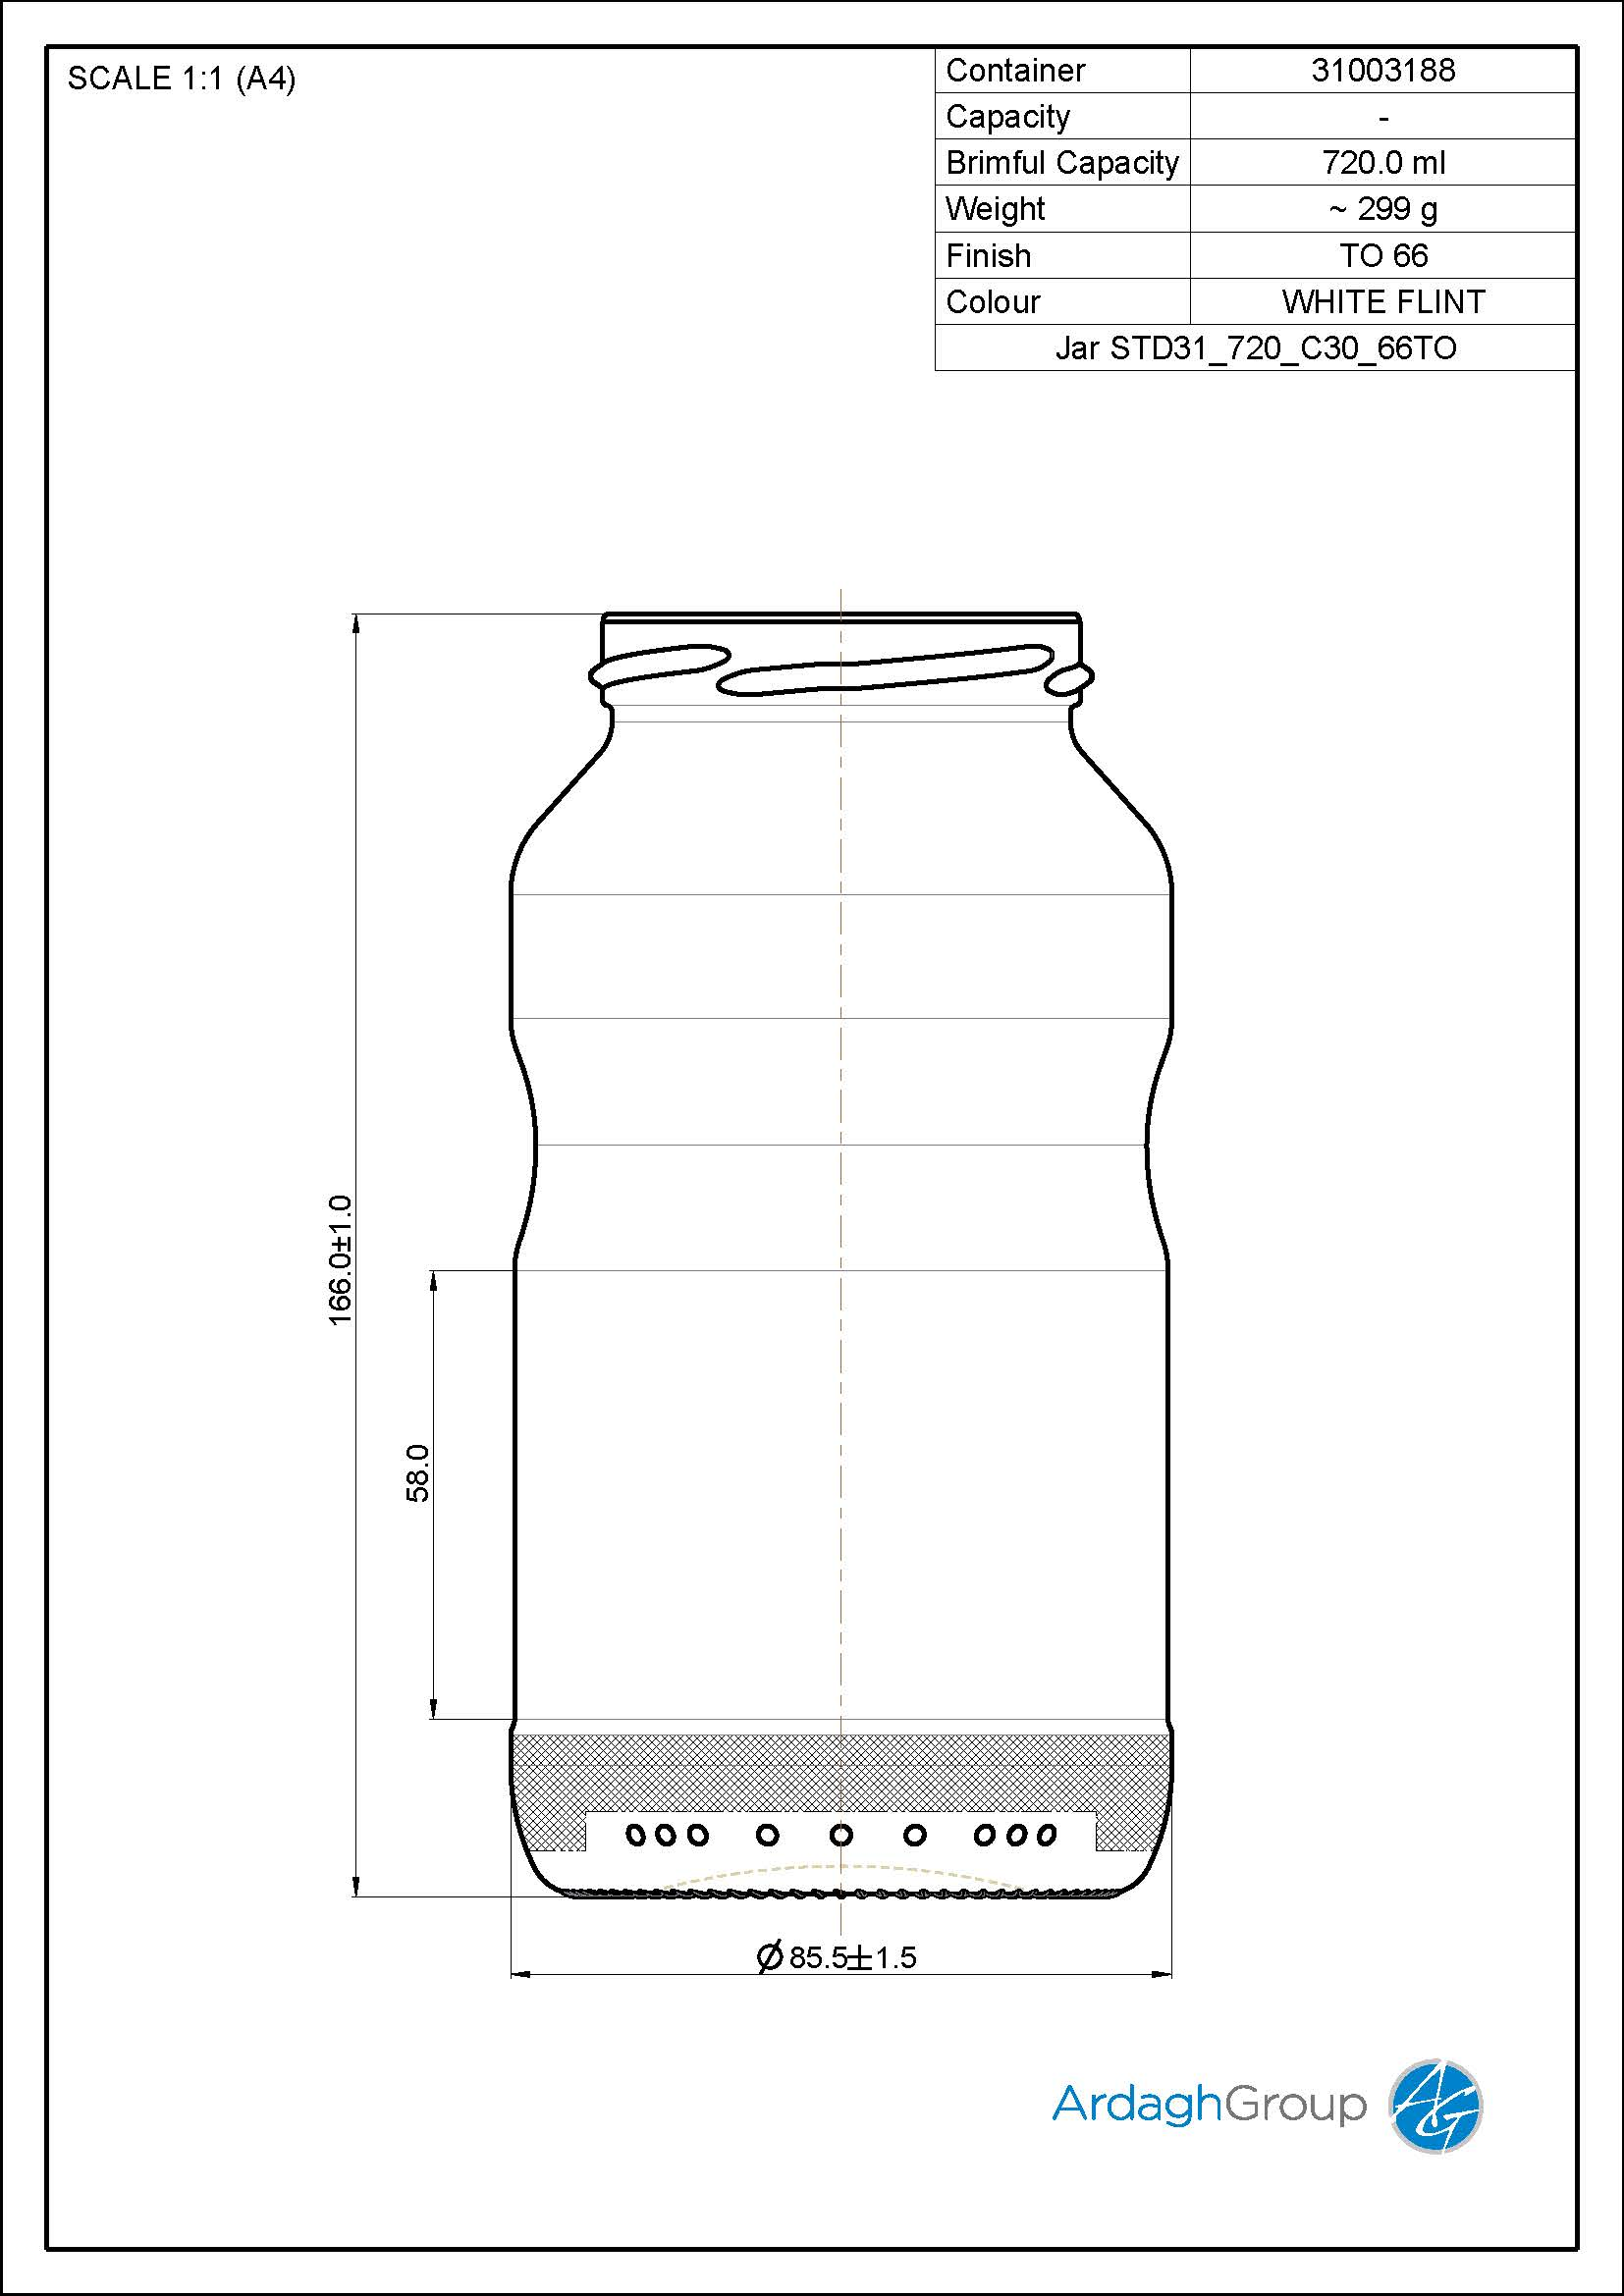 Jar STD31 720 C30 66TO